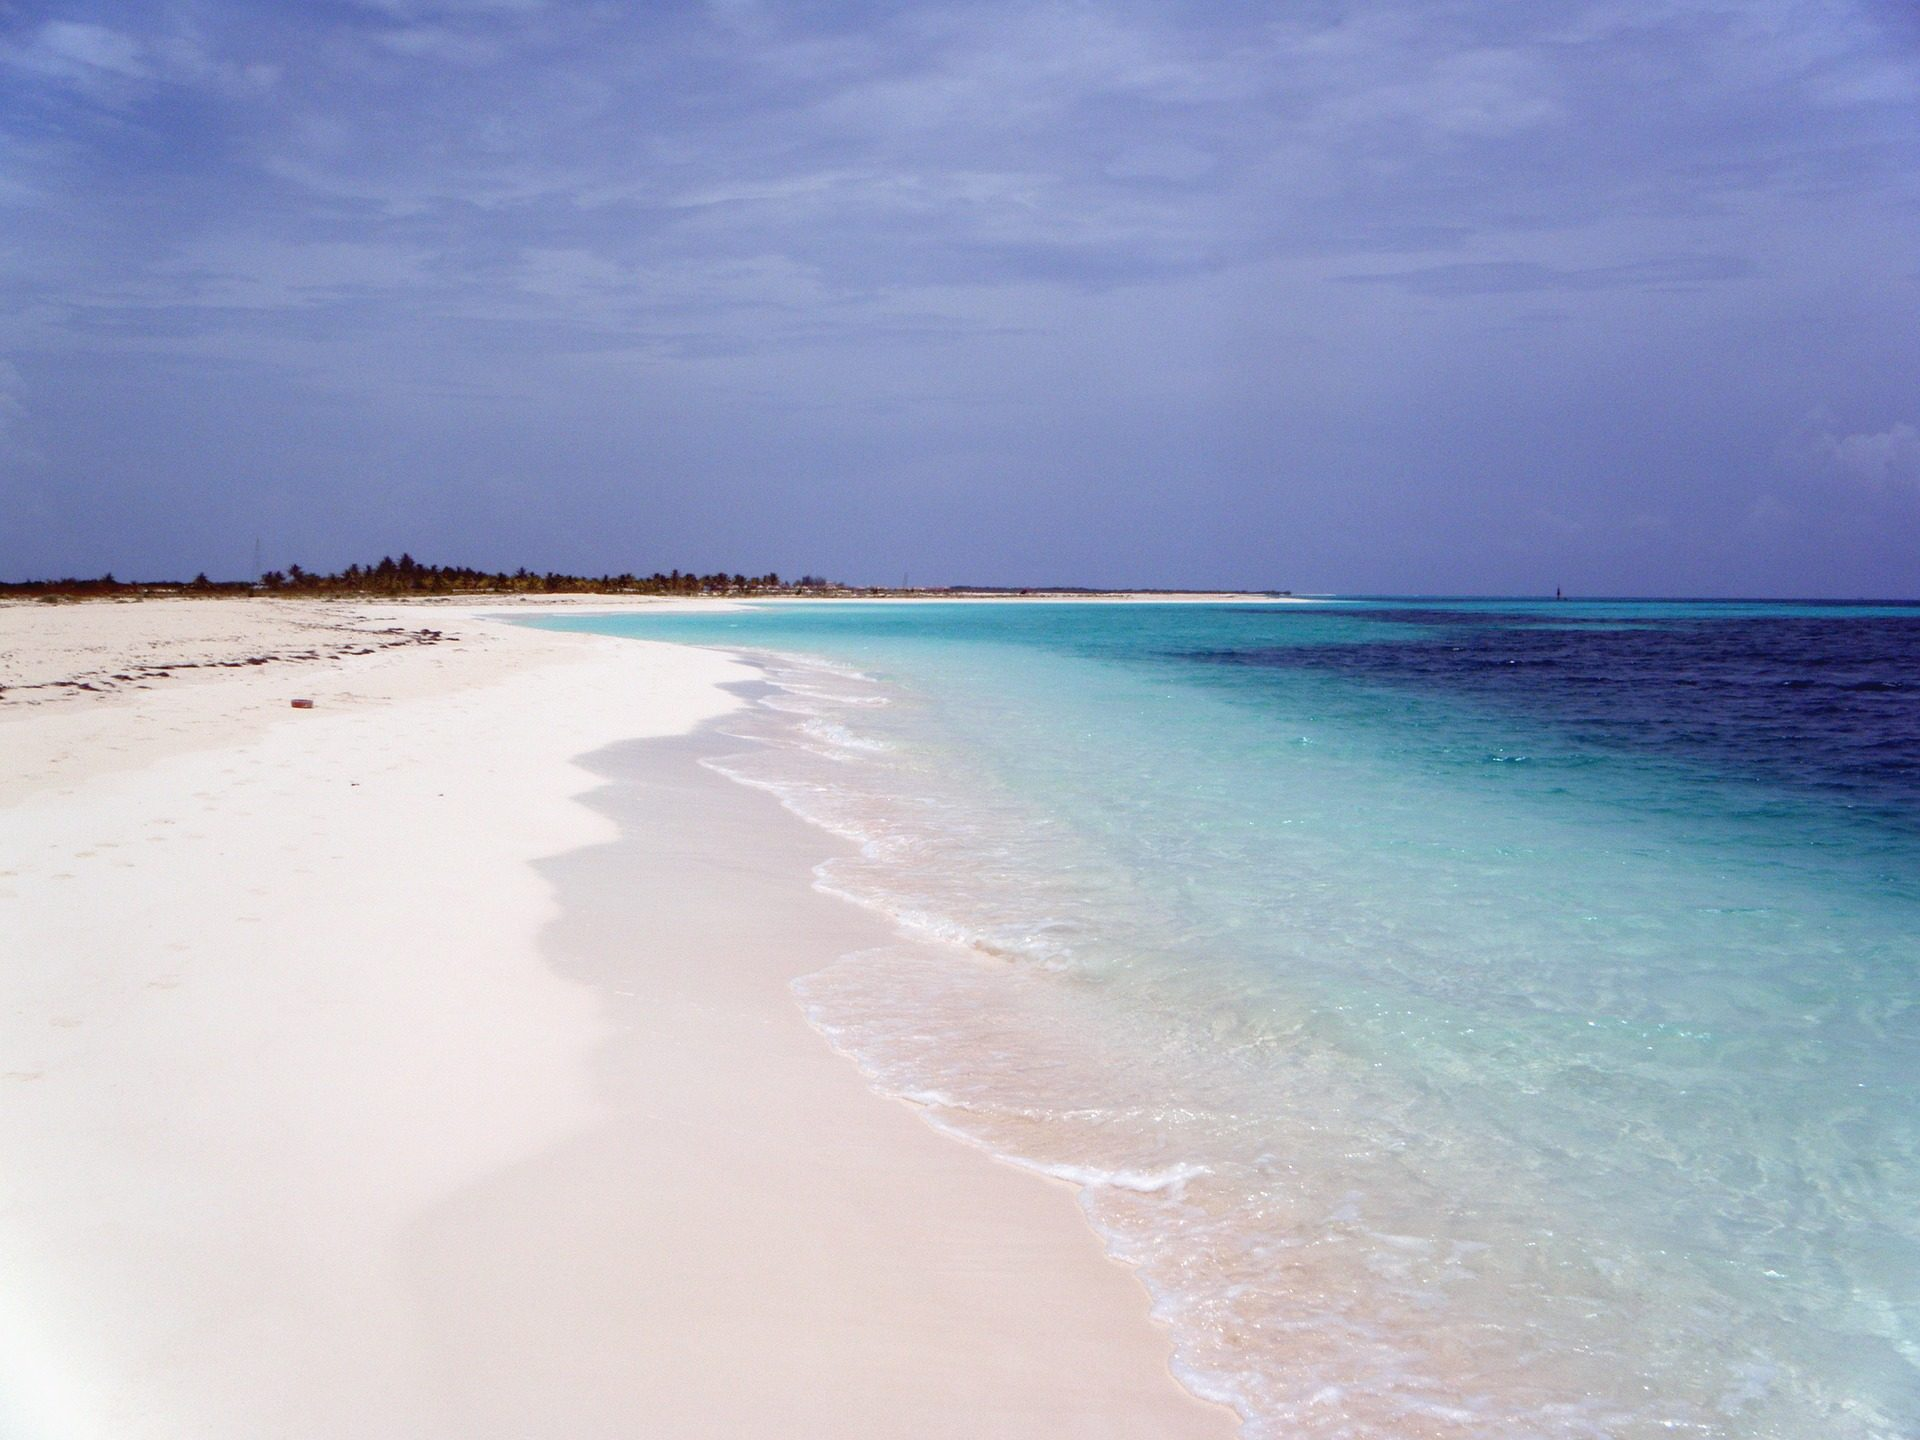 Best white sandy beaches near Havana